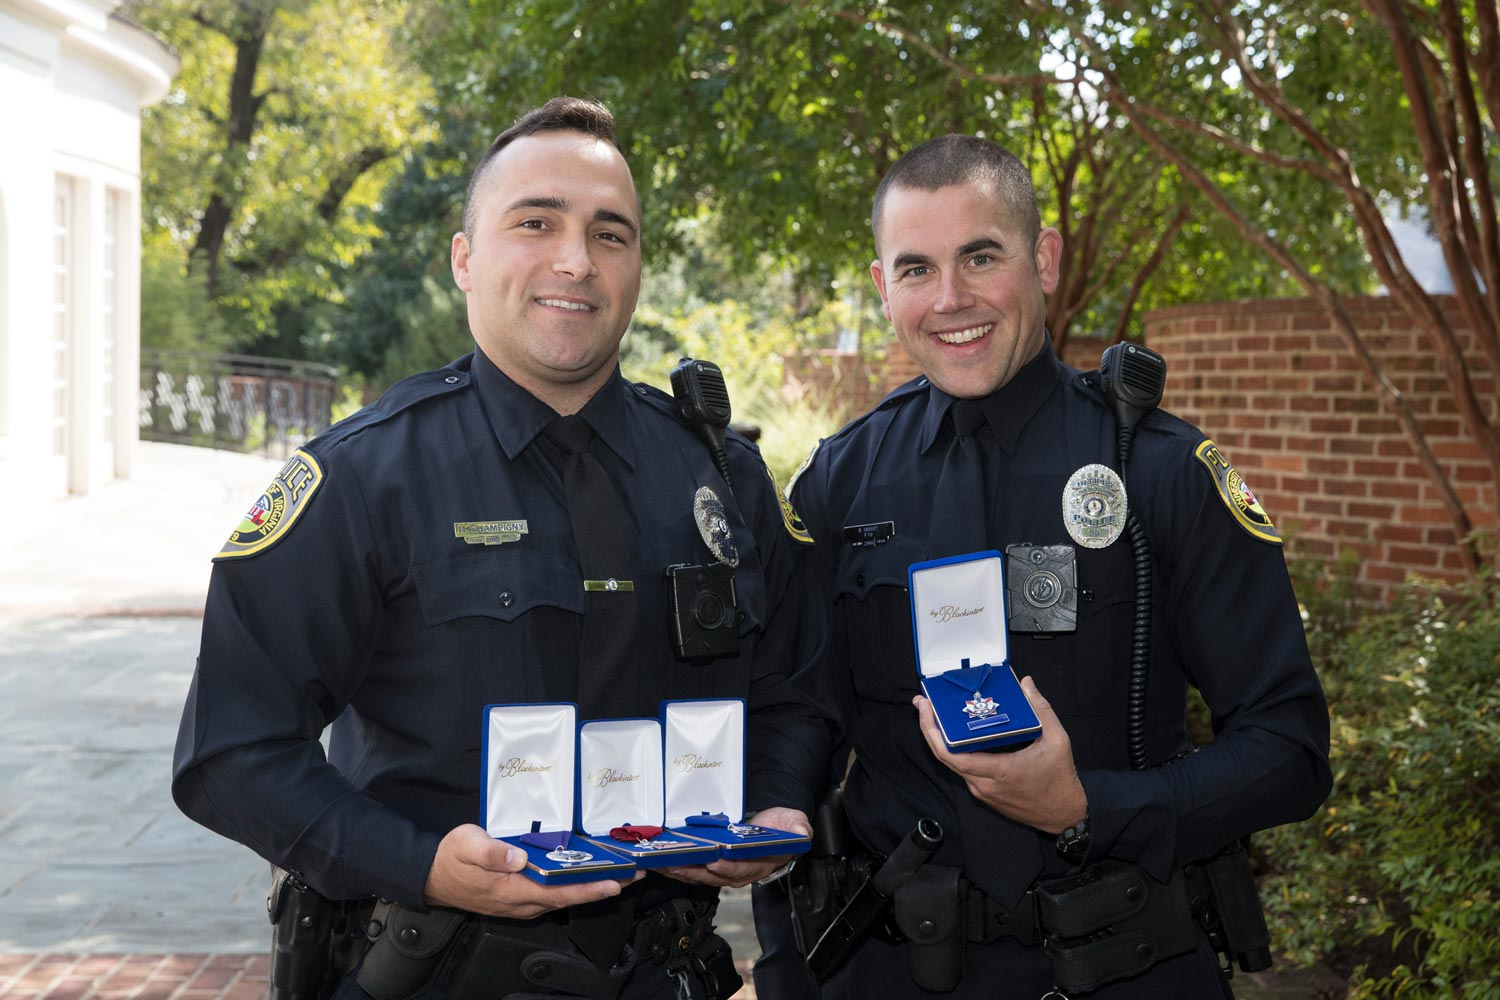 UVA Police Officers Nicholas Champigny and Brandon Smoot stand in a courtyard outside Alumni Hall, proudly holding their awards.